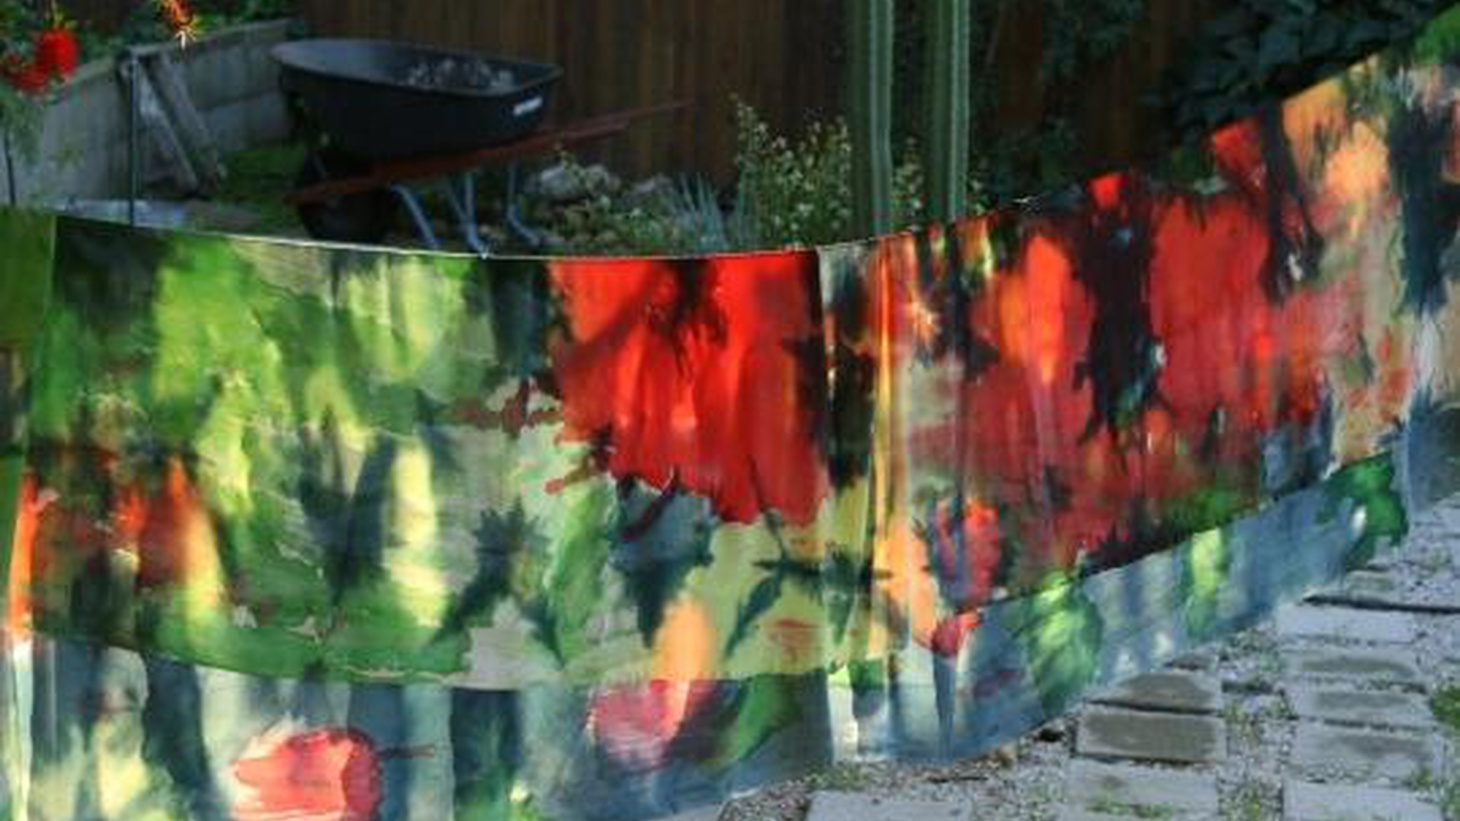 Alissa Walker talks to Jennifer Parry Dodge about tie-dyeing. Matt Holzman reports on another LA project that was Never Built: Elysian Park housing by Richard Neutra.